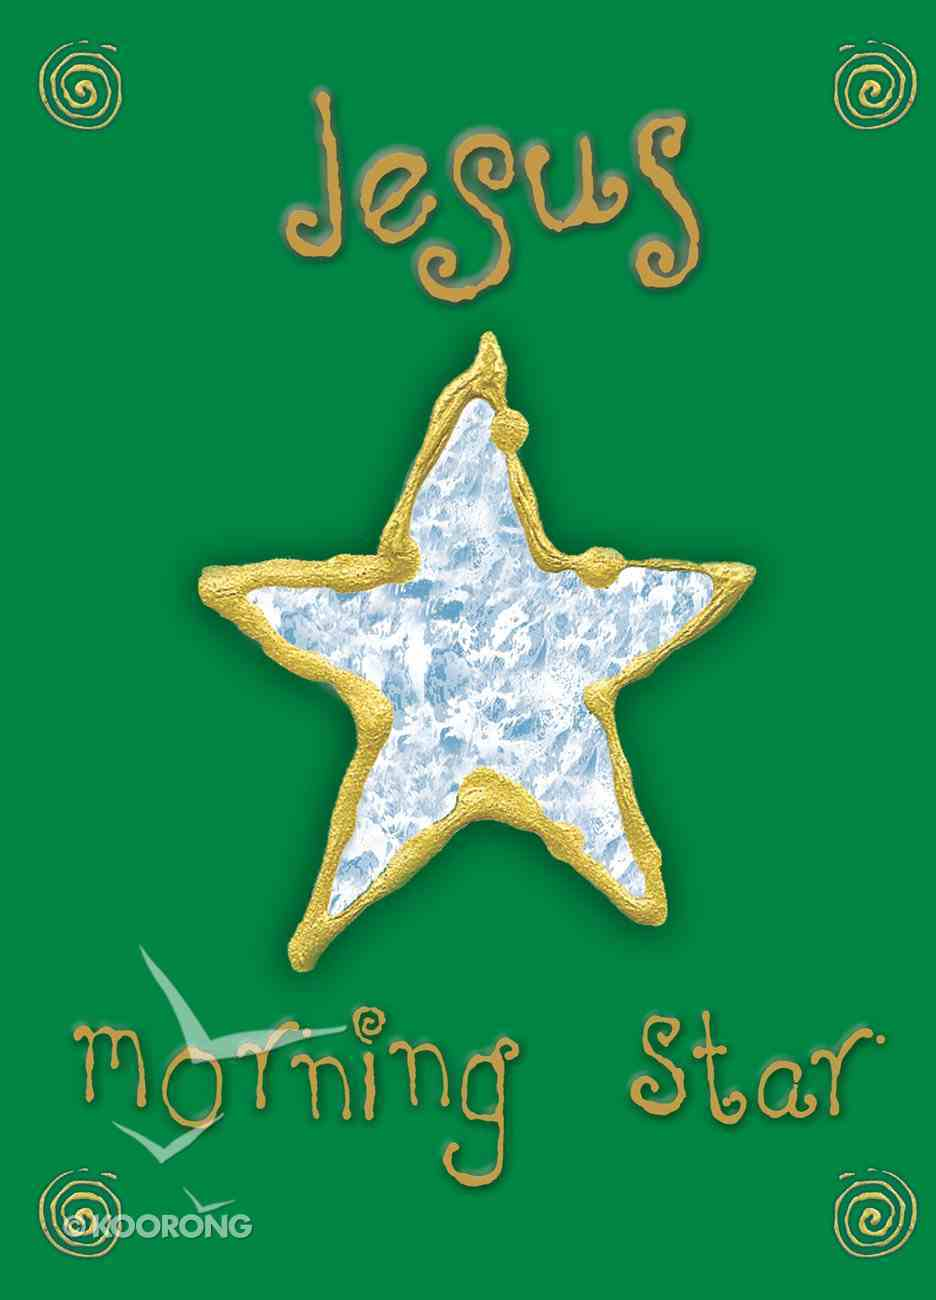 Christmas Boxed Cards: Jesus Morning Star (Star) Box